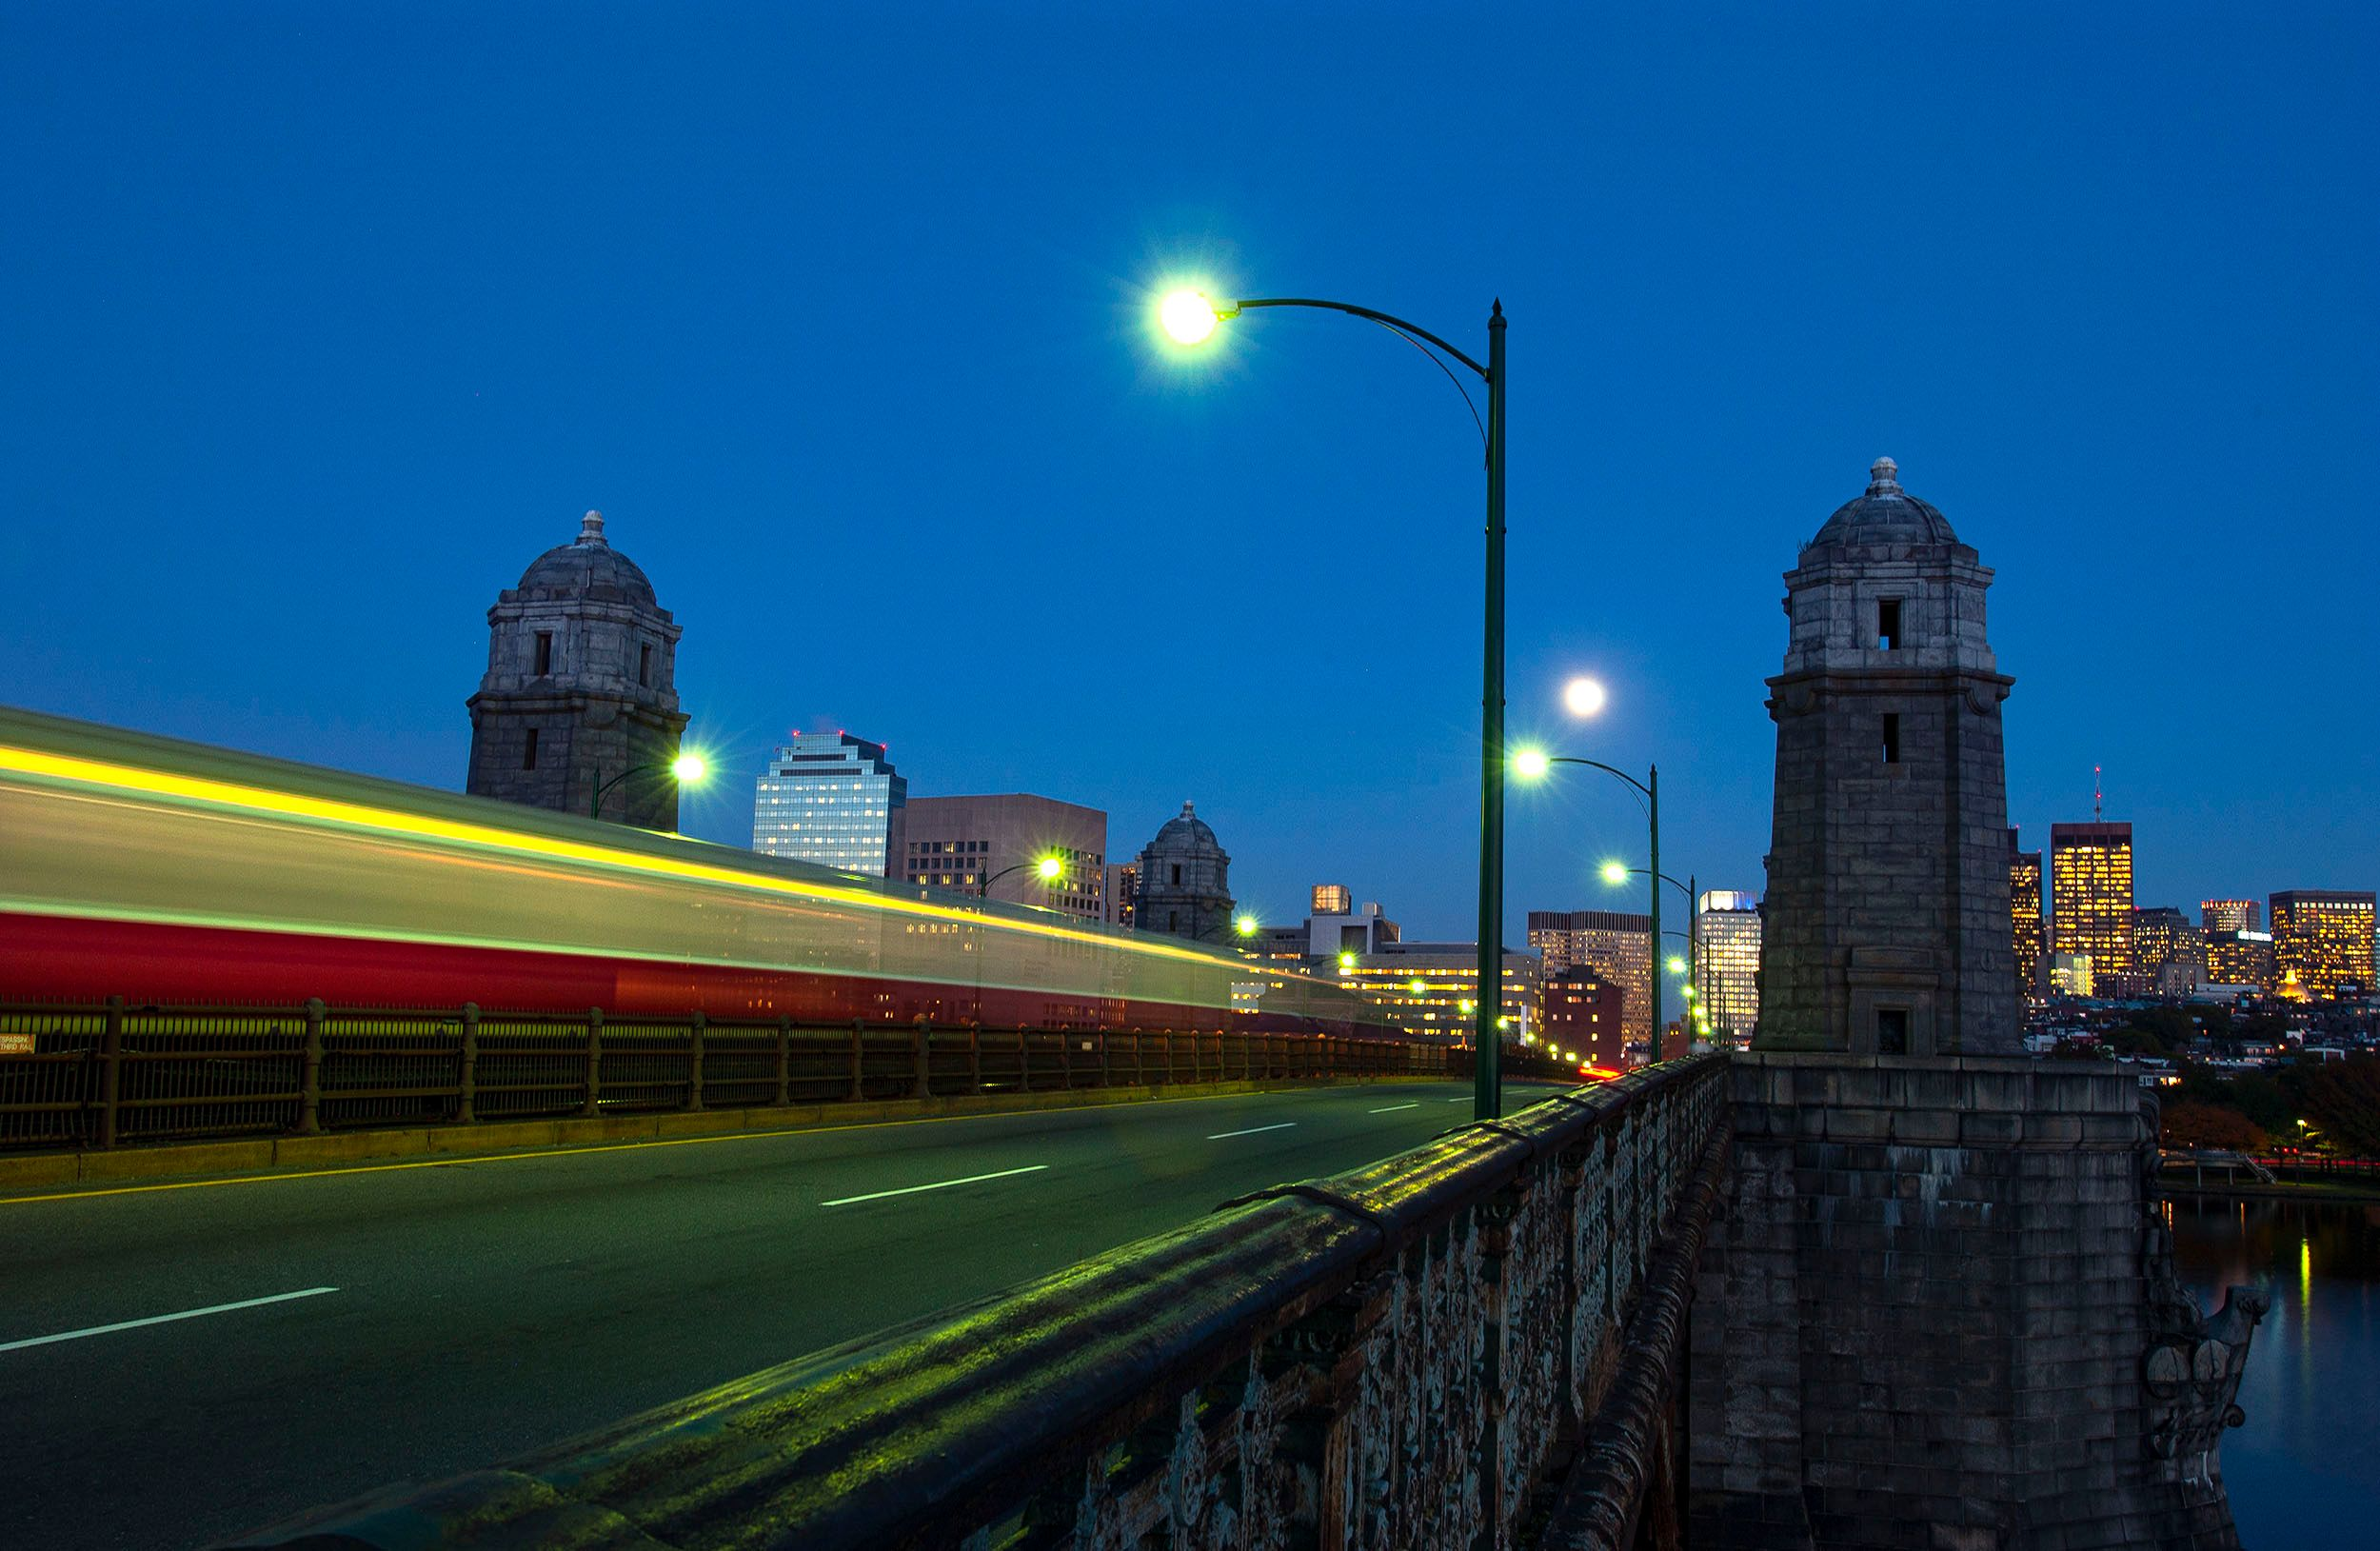 Longfellow Bridge at Dusk